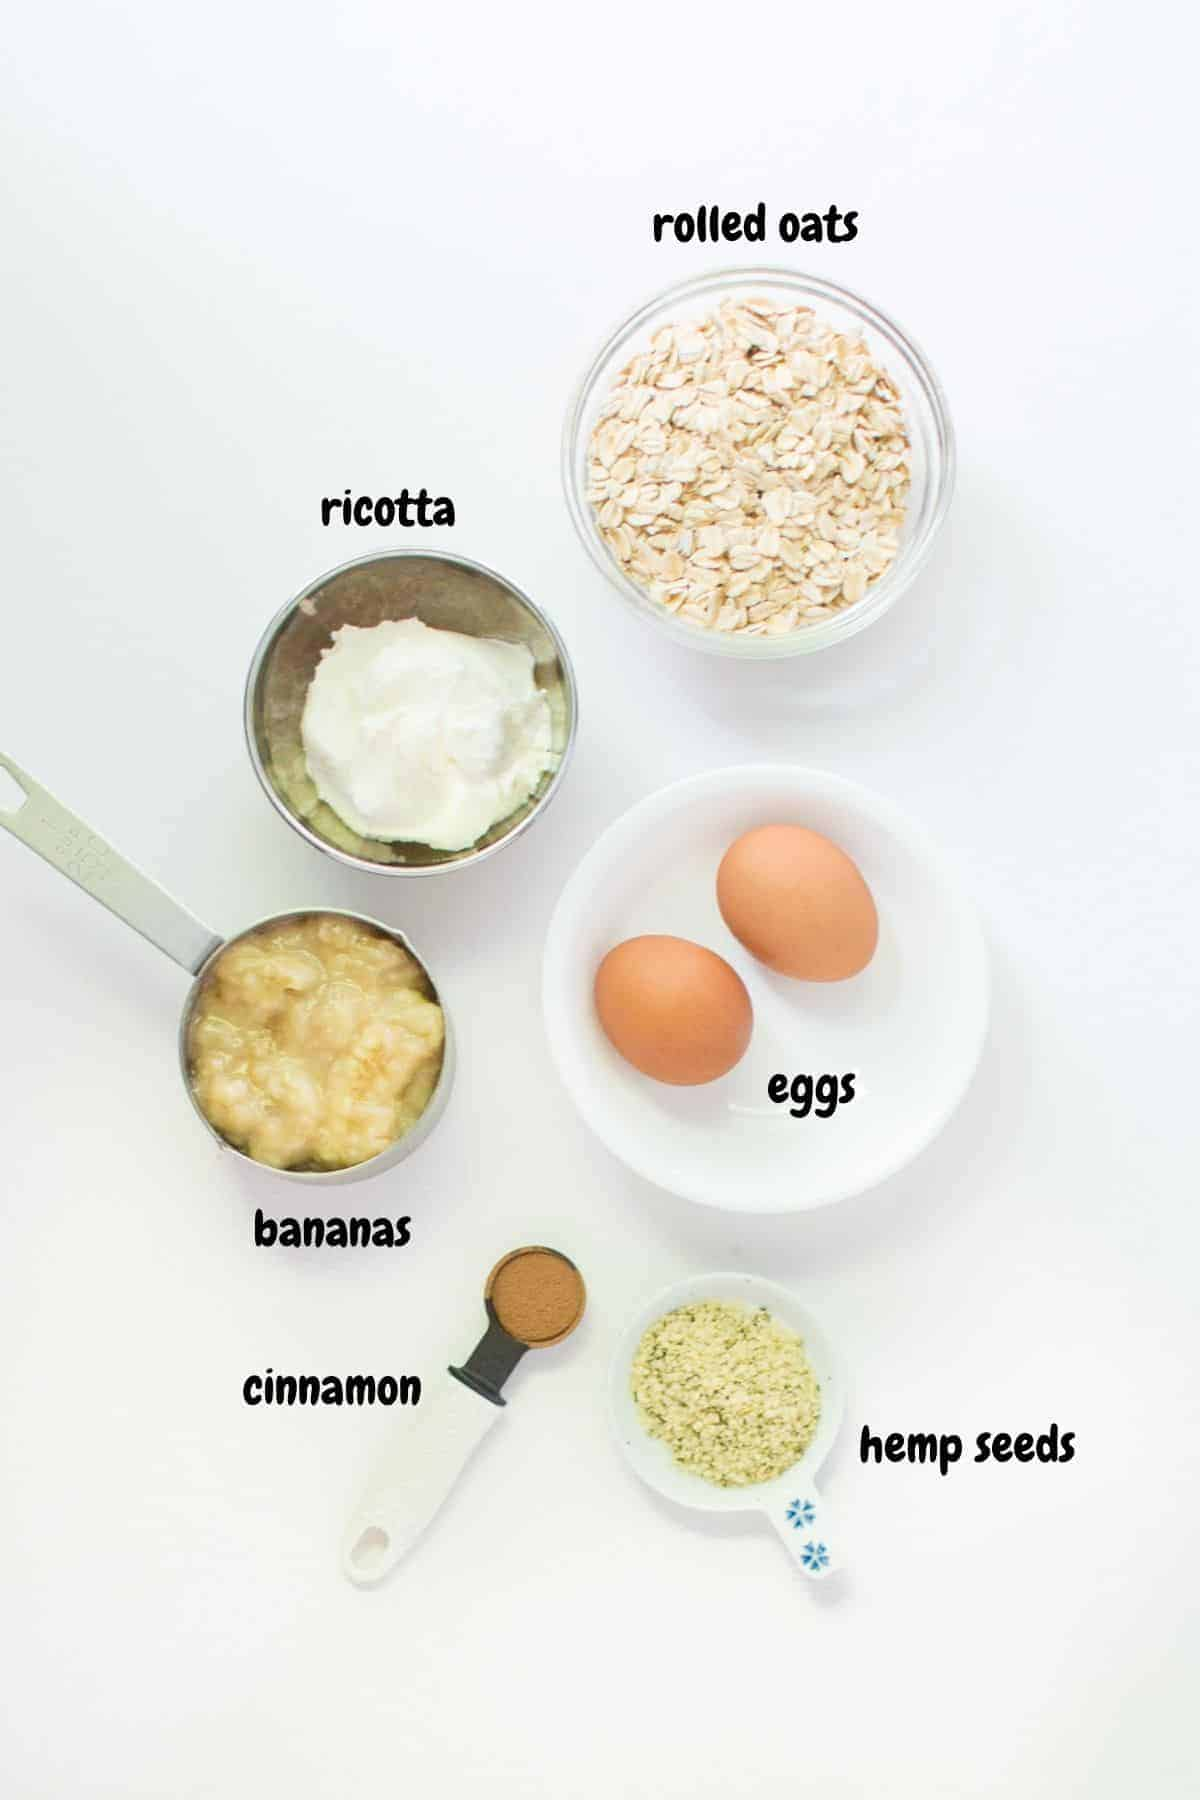 all the ingredients for the banana protein pancakes laid out on a white background